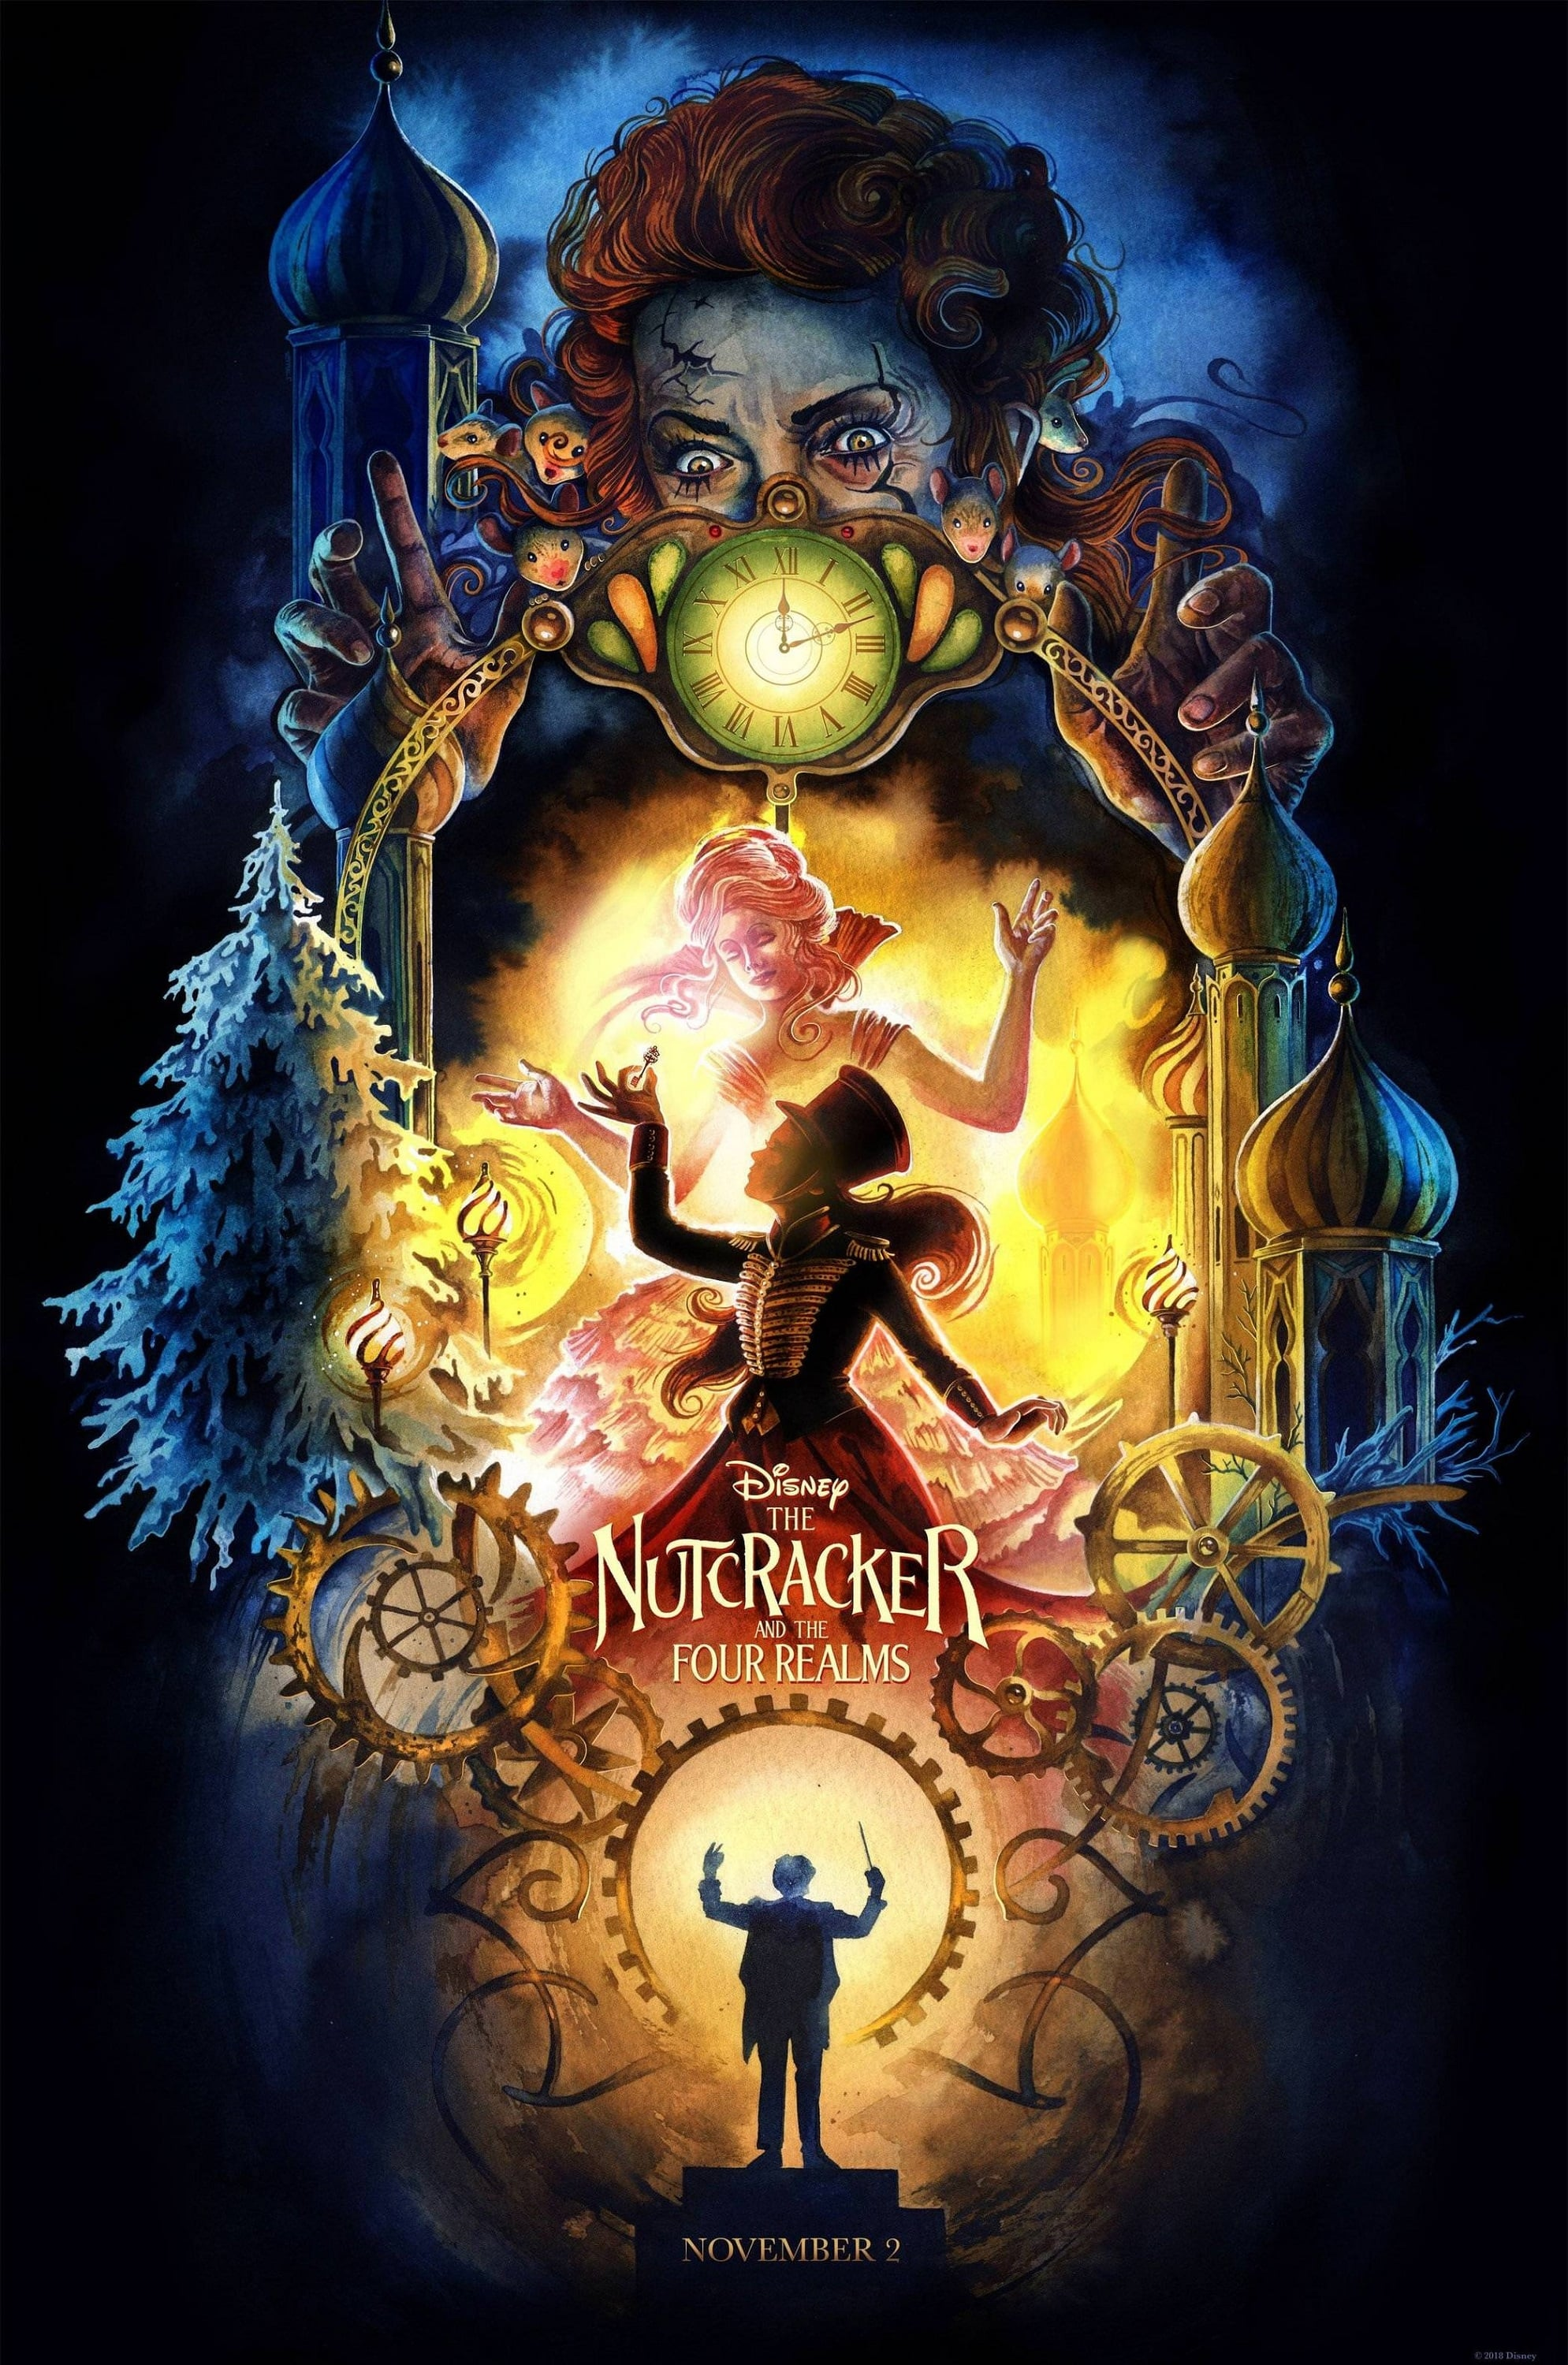 Poster and image movie Film Spargatorul de Nuci si Cele Patru Taramuri - The Nutcracker and the Four Realms - The Nutcracker and the Four Realms 2018